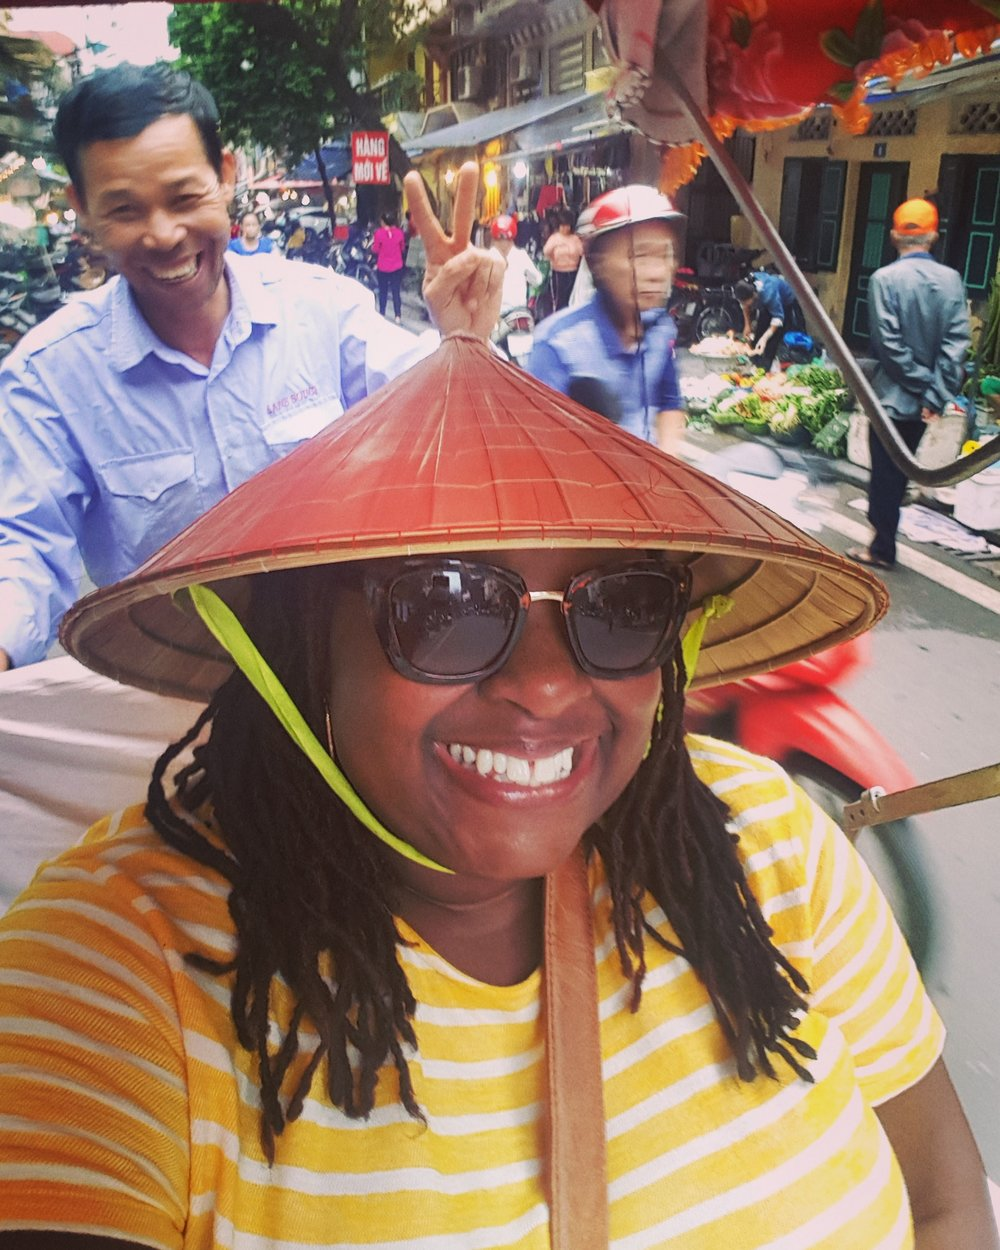 On a Cyclo Tour…. which is really a bit of a death wish in Hanoi!